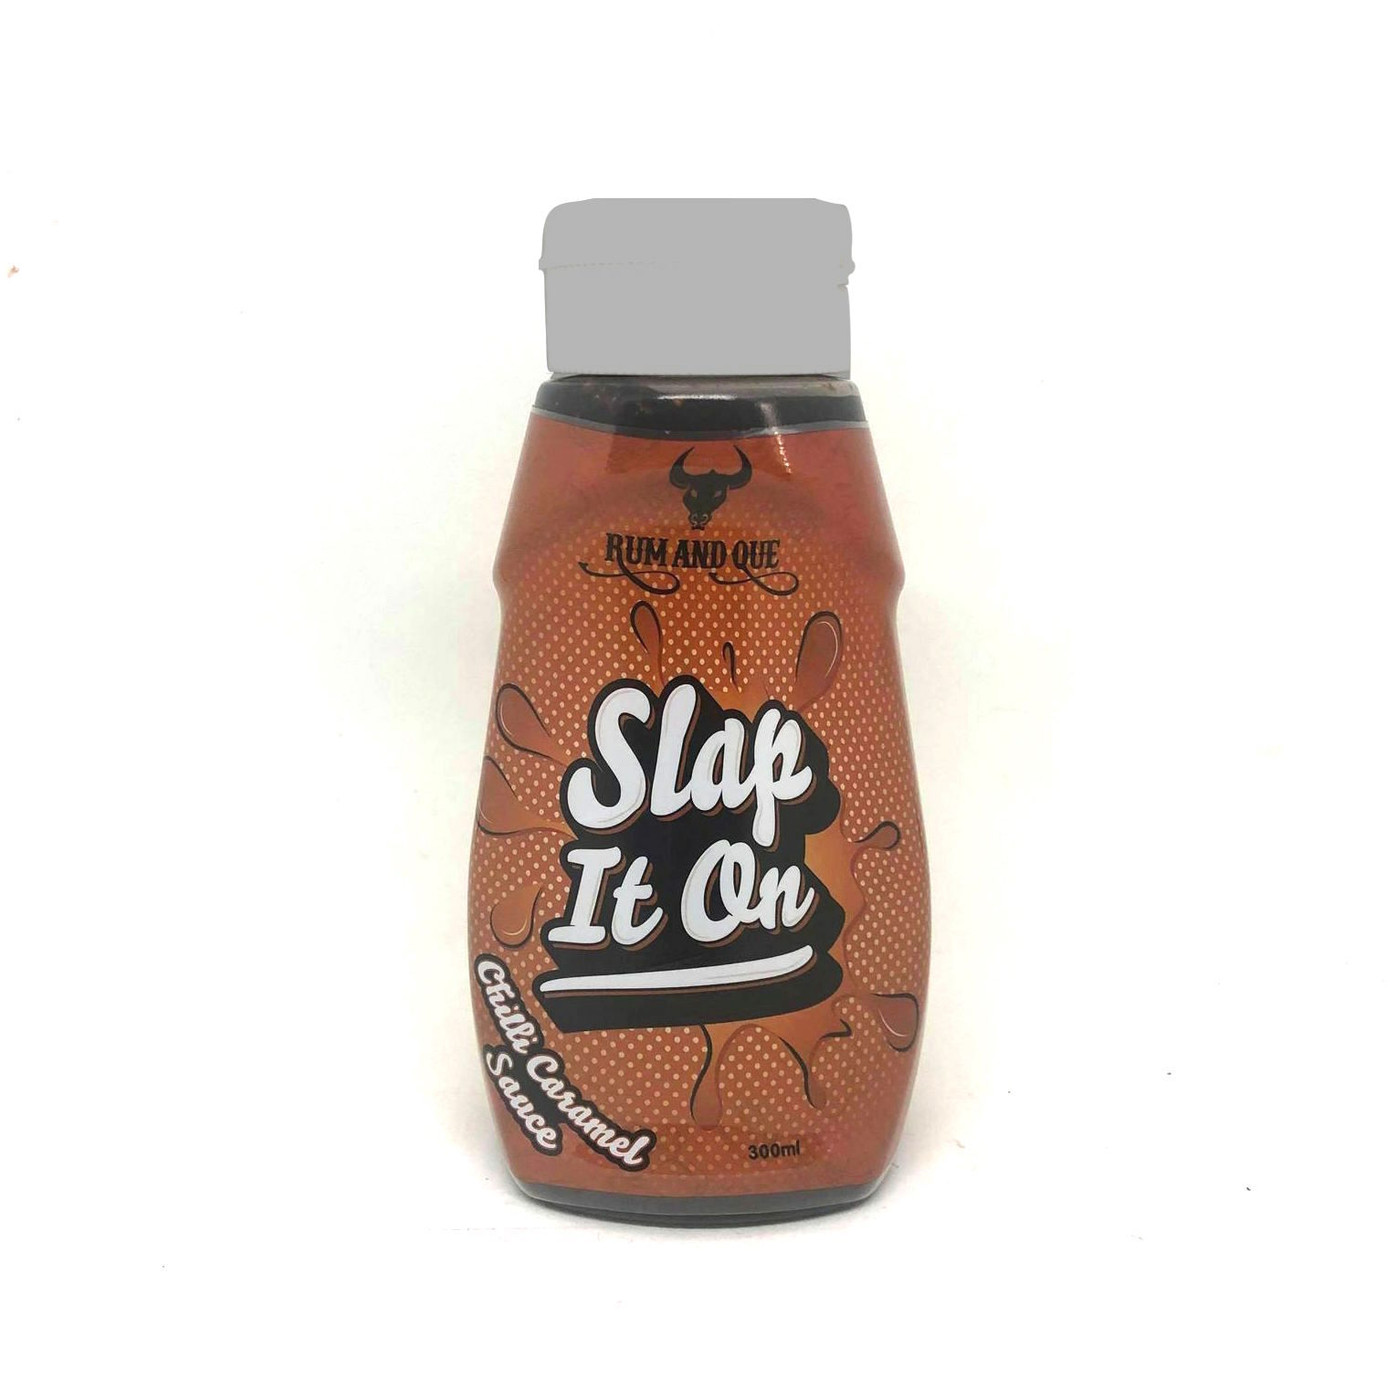 Rum and Que -  Slap it On Chilli Caramel Sauce